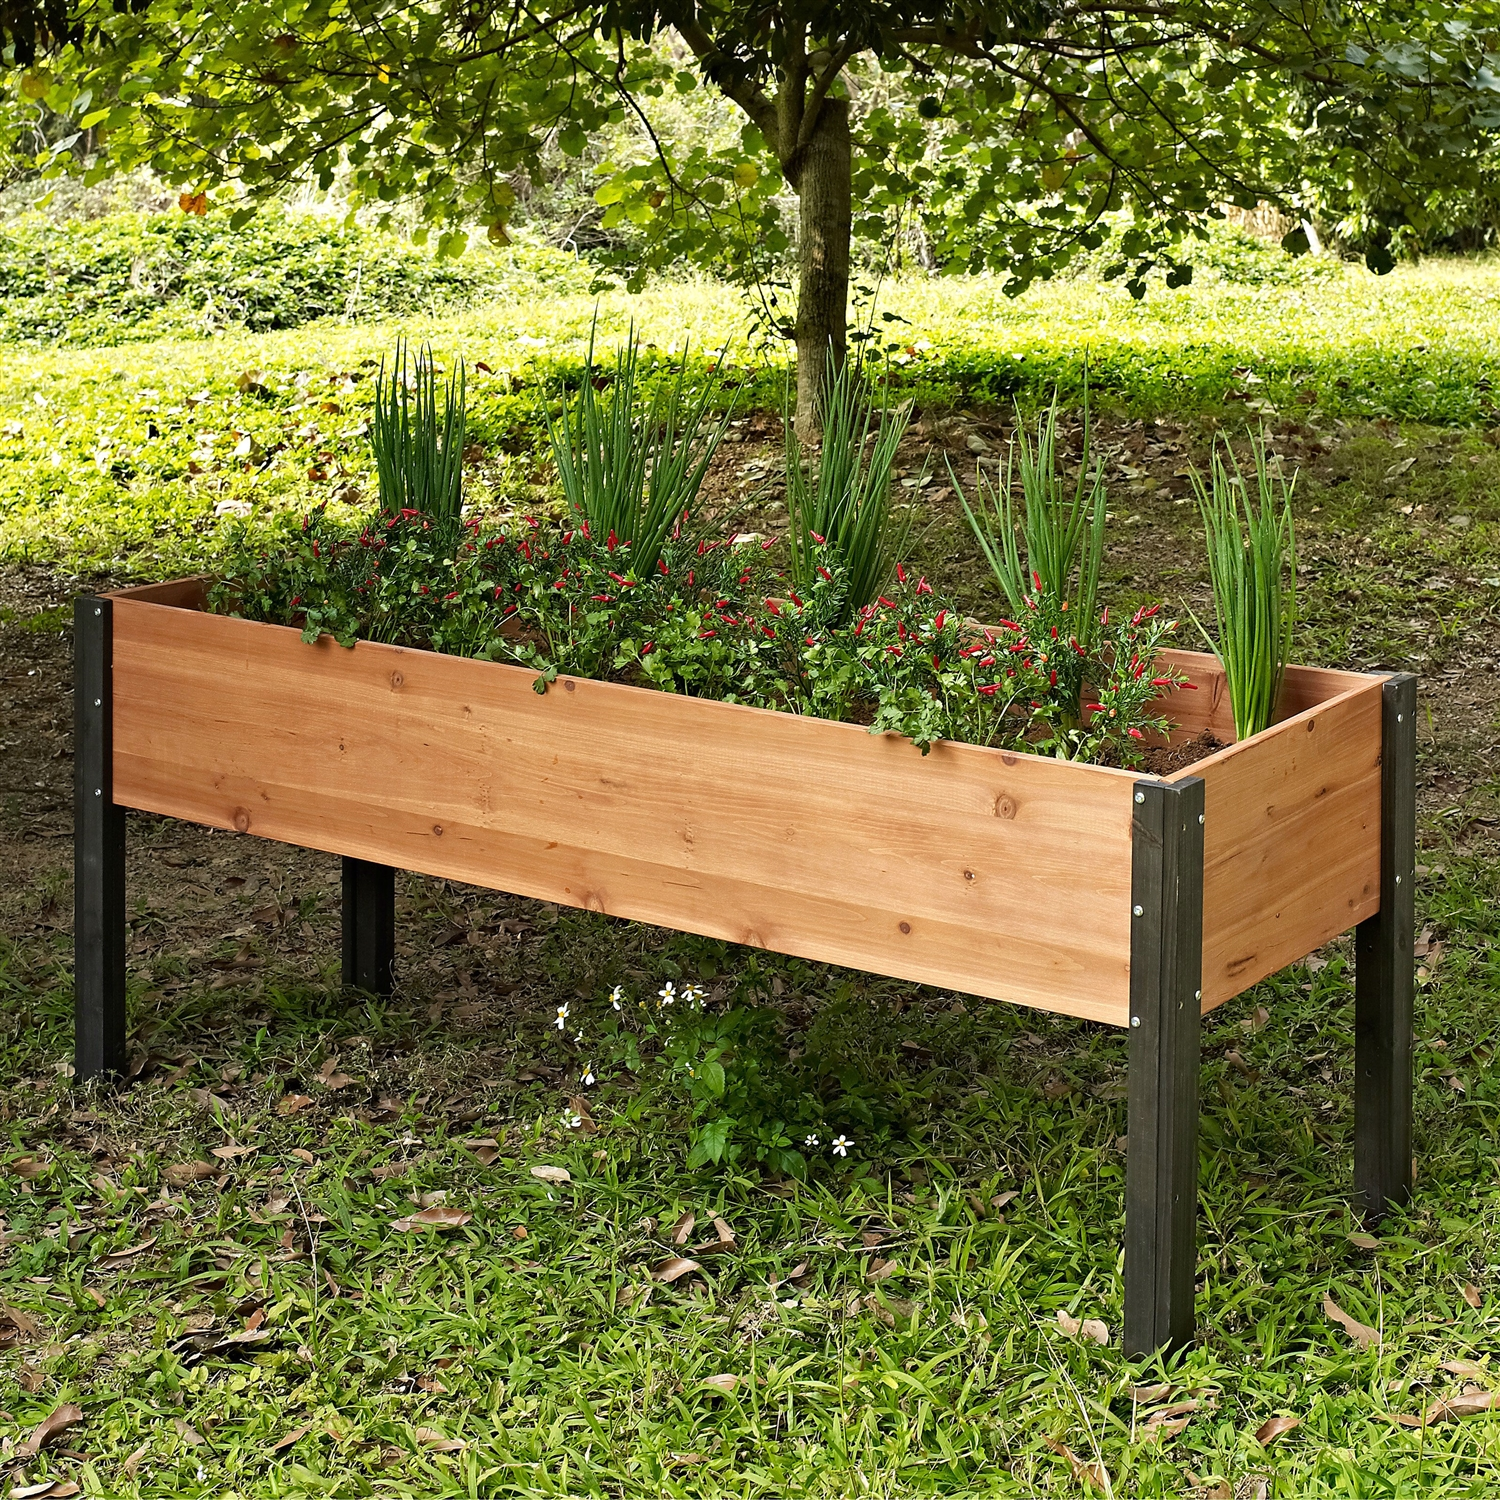 Elevated Outdoor Raised Garden Bed Planter Box